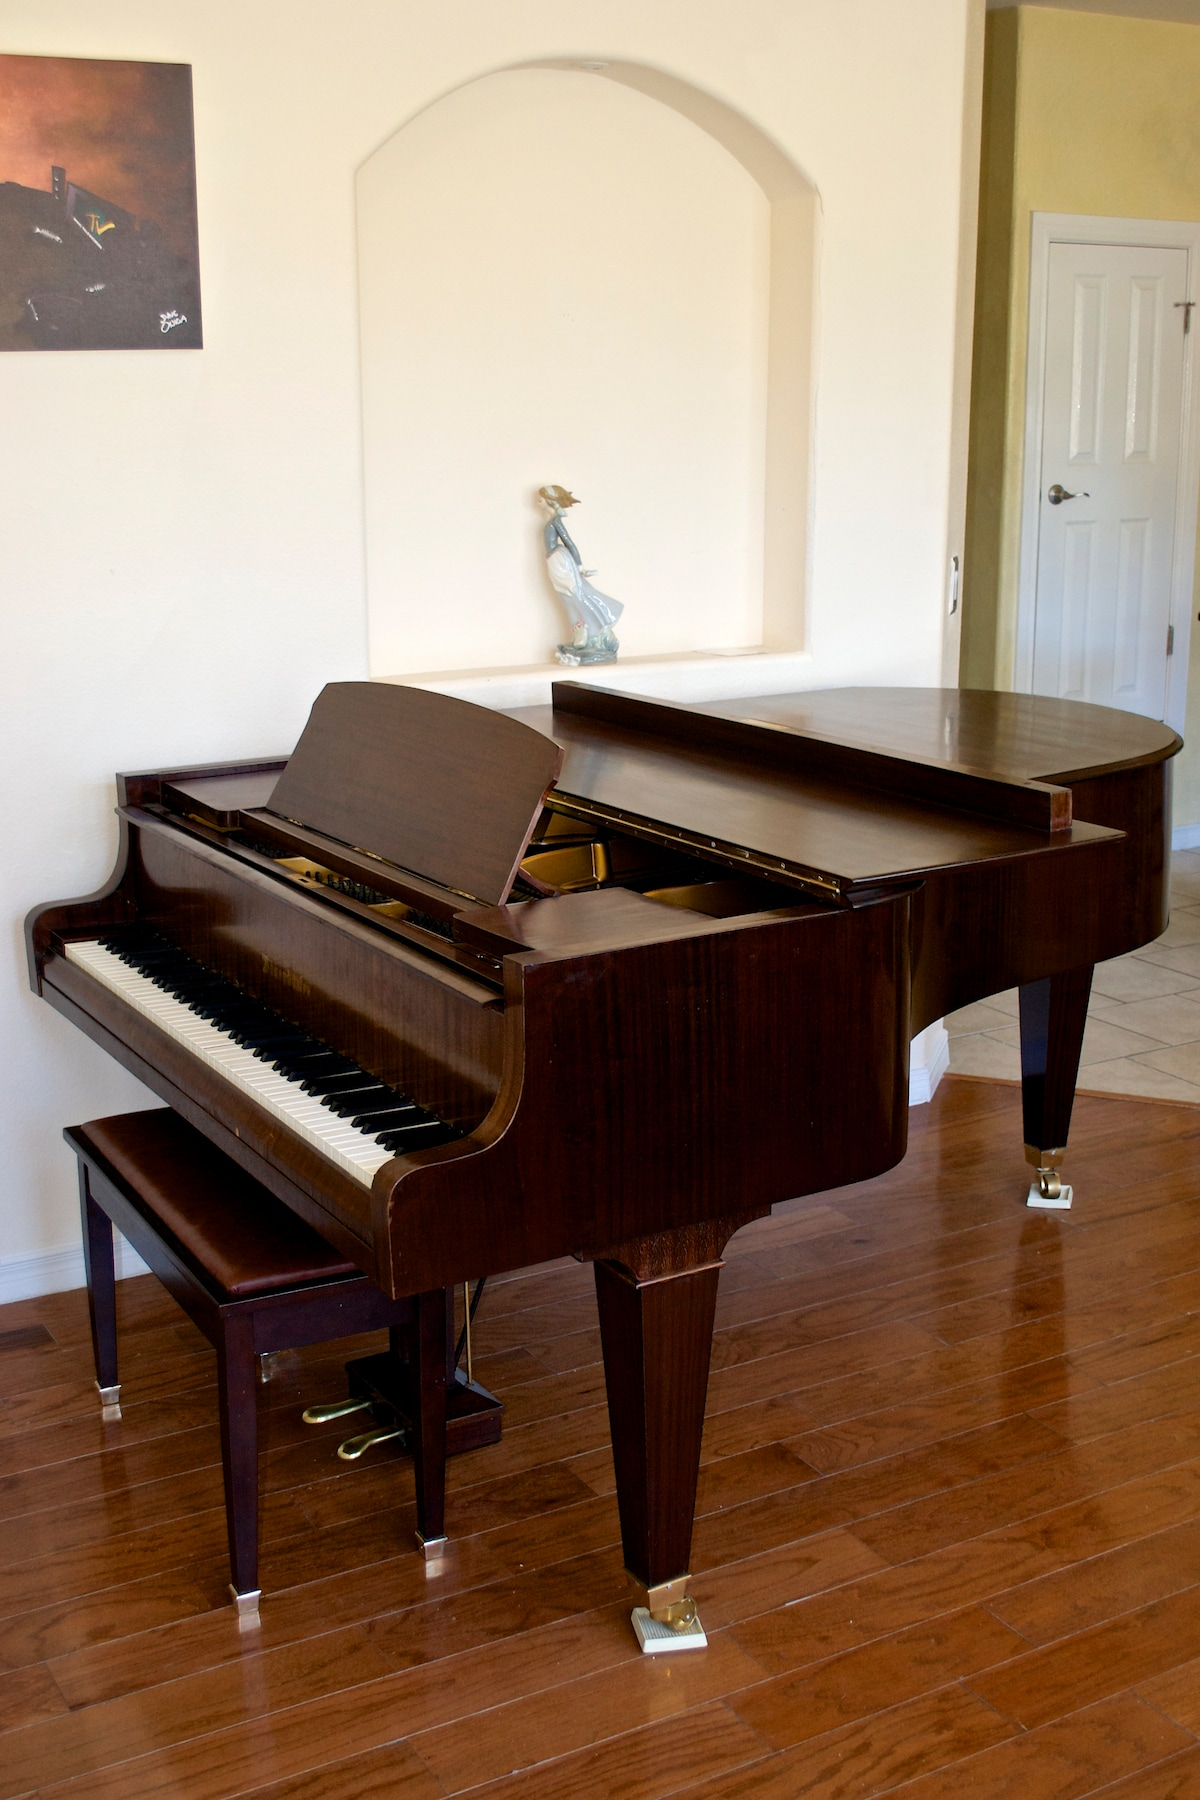 A Bosendorfer 7 foot grand piano graces the living room.  This is one of the finest piano makers in history, most say to rival Steinway.